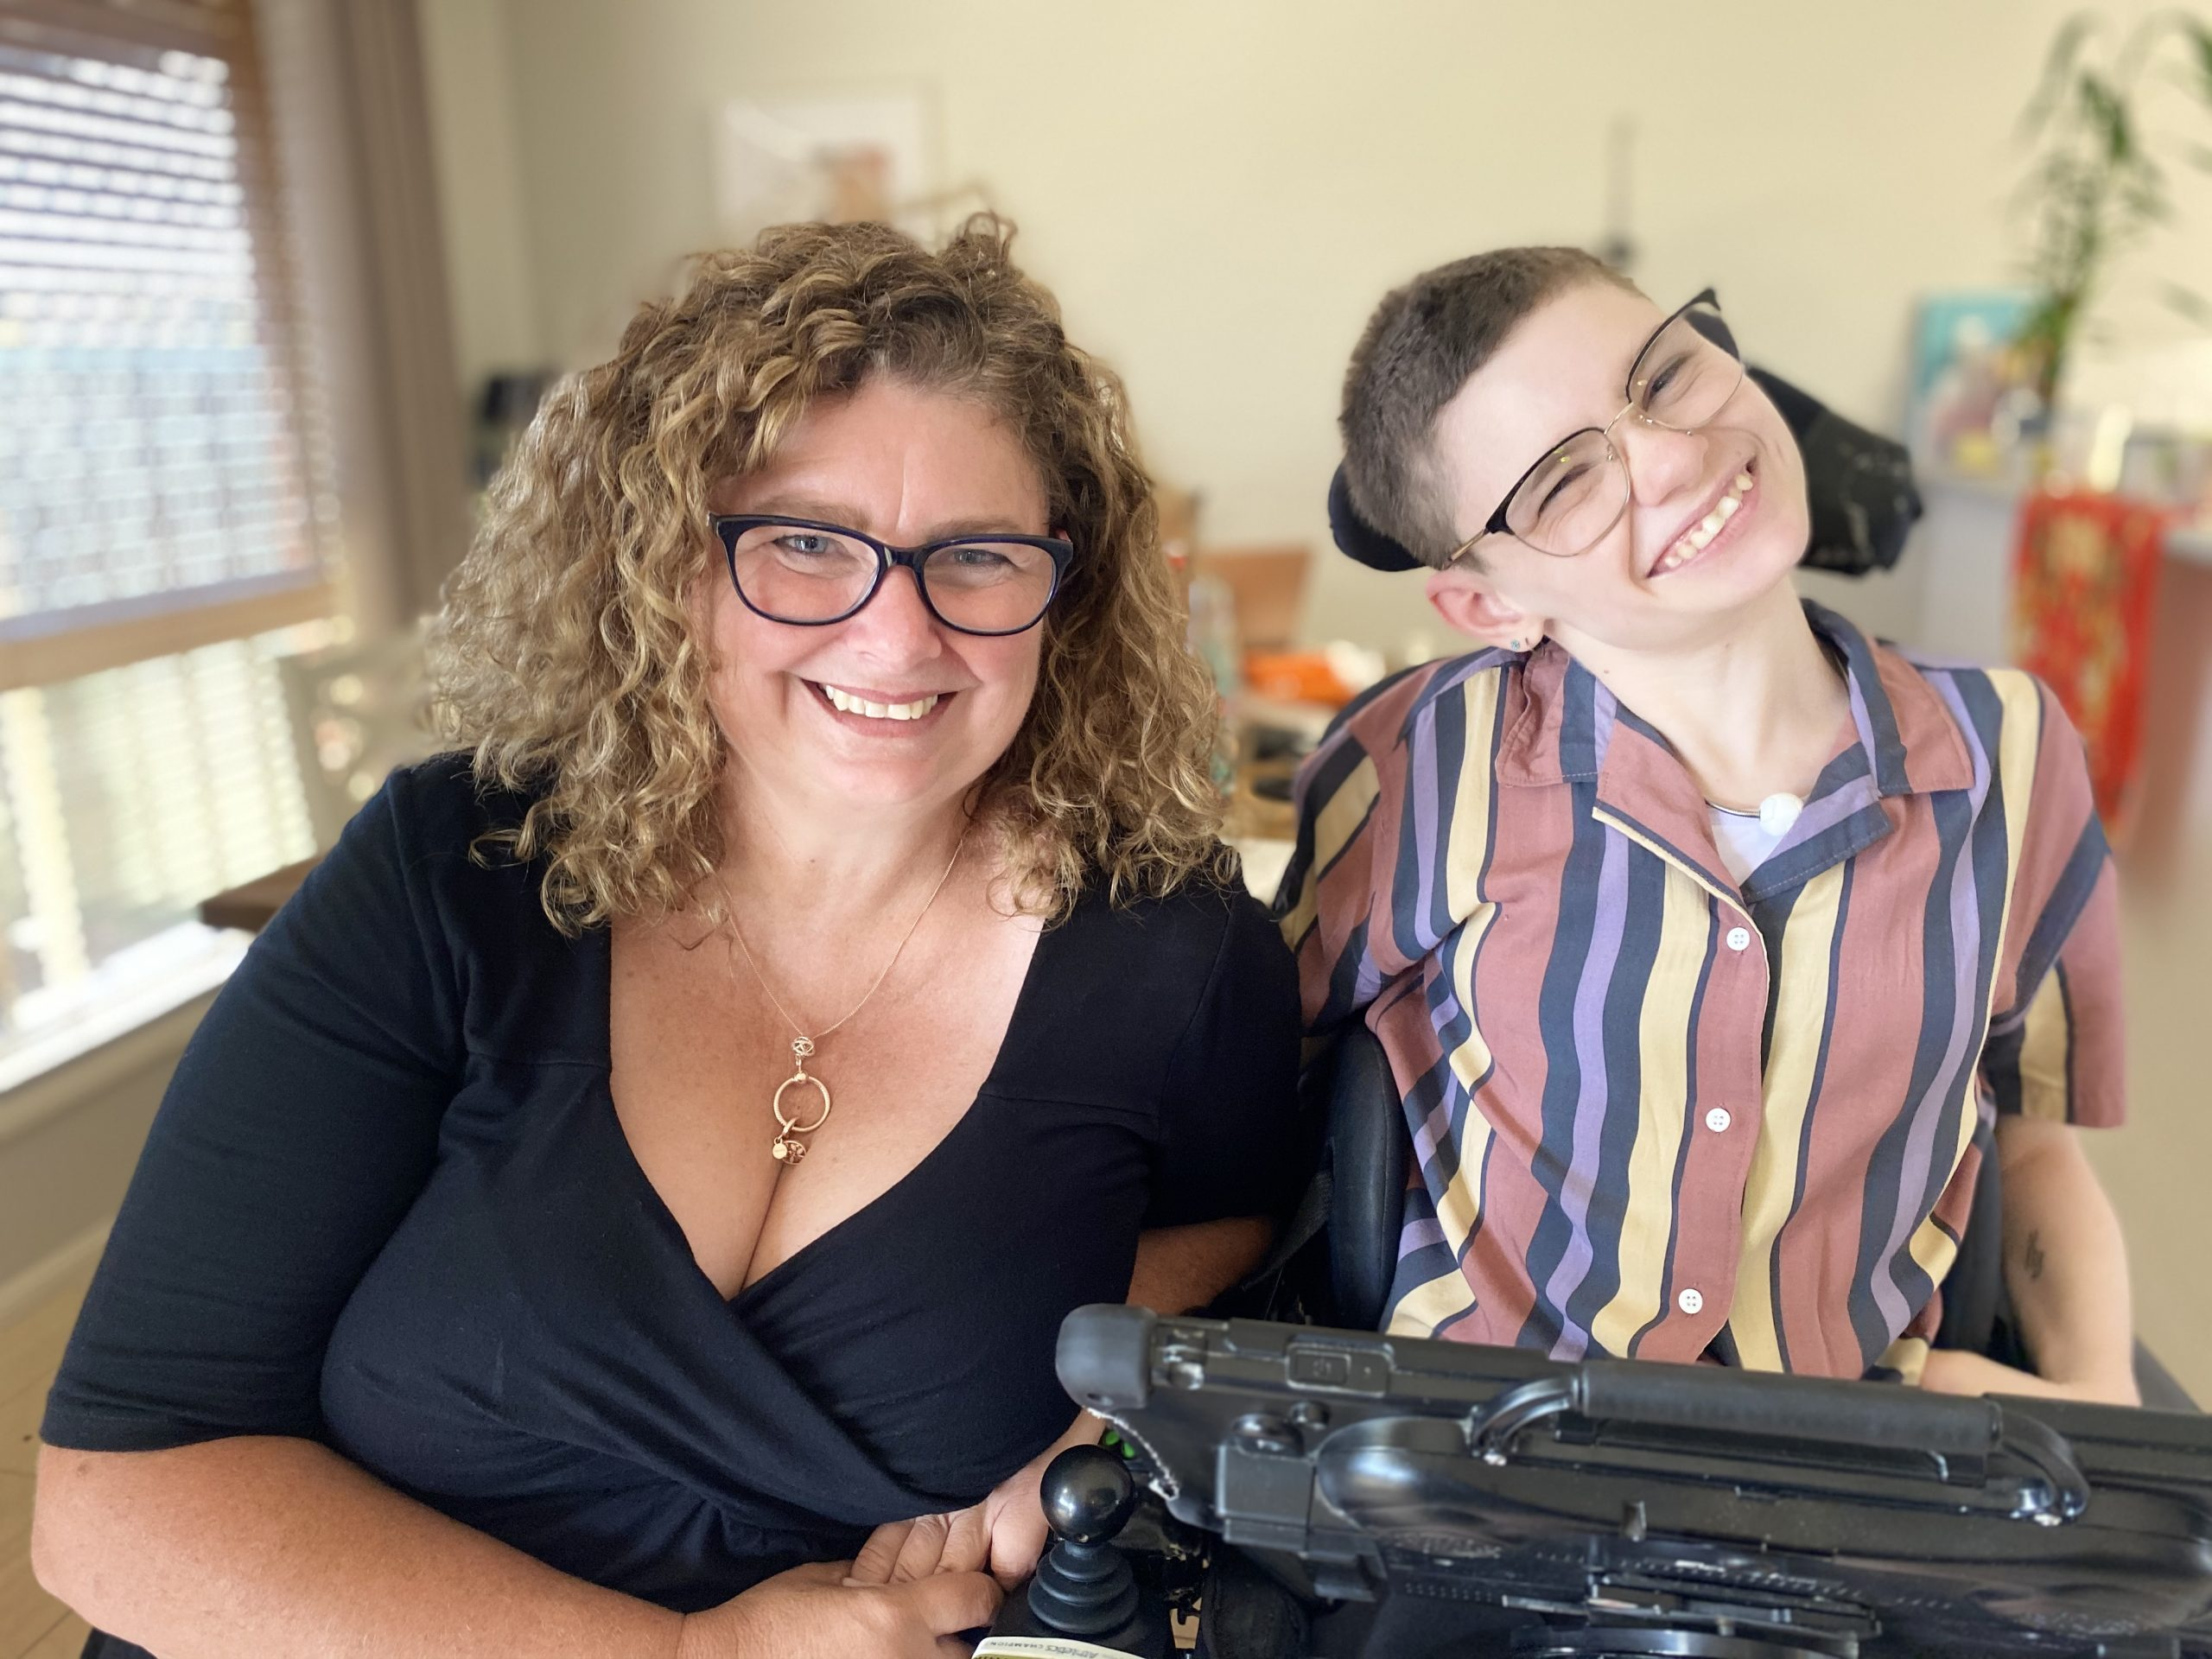 Siobhan is dealing with COVID-19 as an NDIS participant